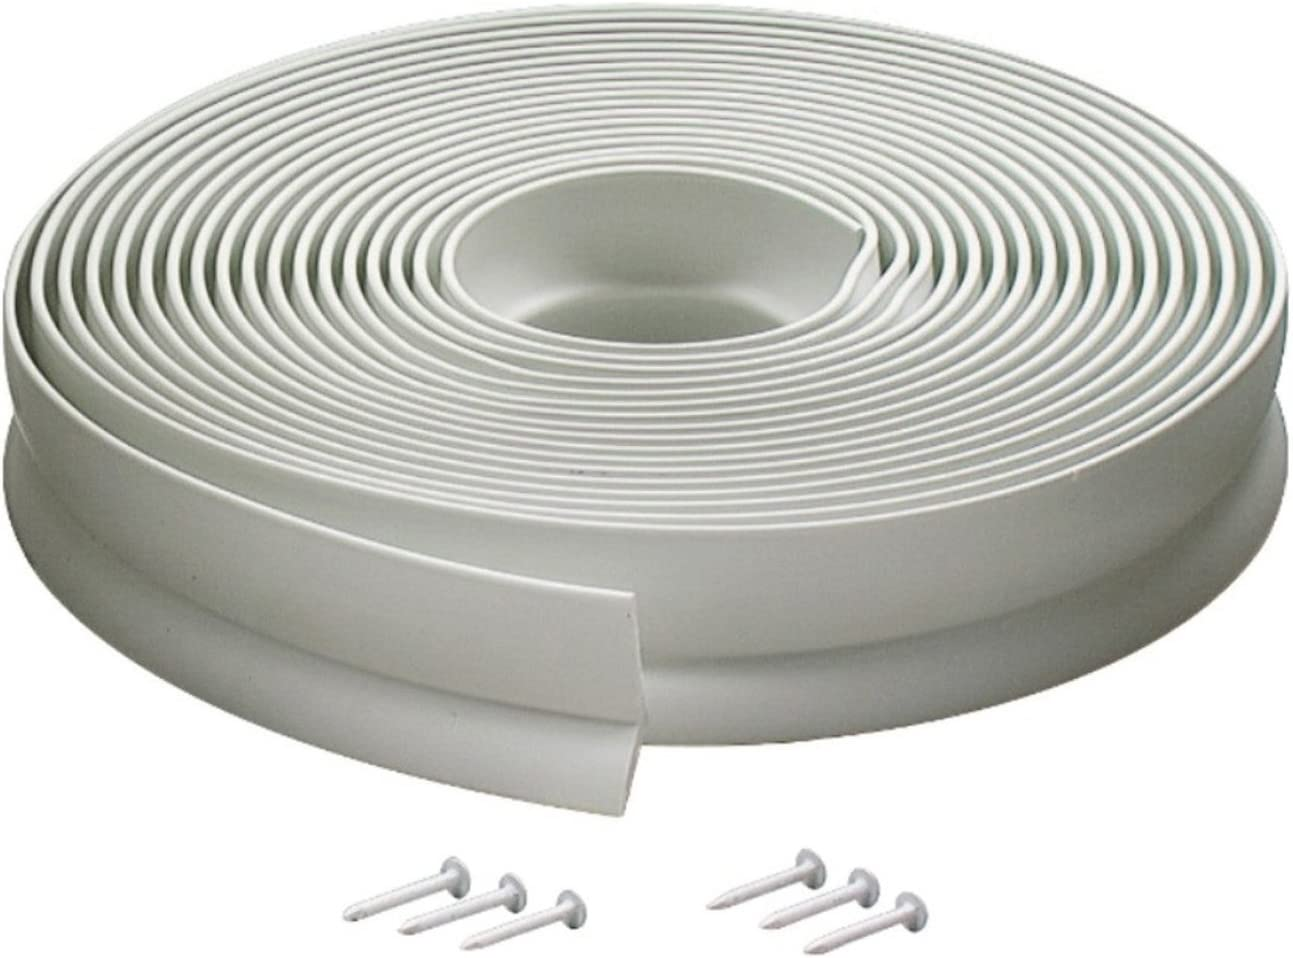 30 Feet M-D Building Products 3822 Vinyl Garage Door Top and Sides Seal White 2 PACK